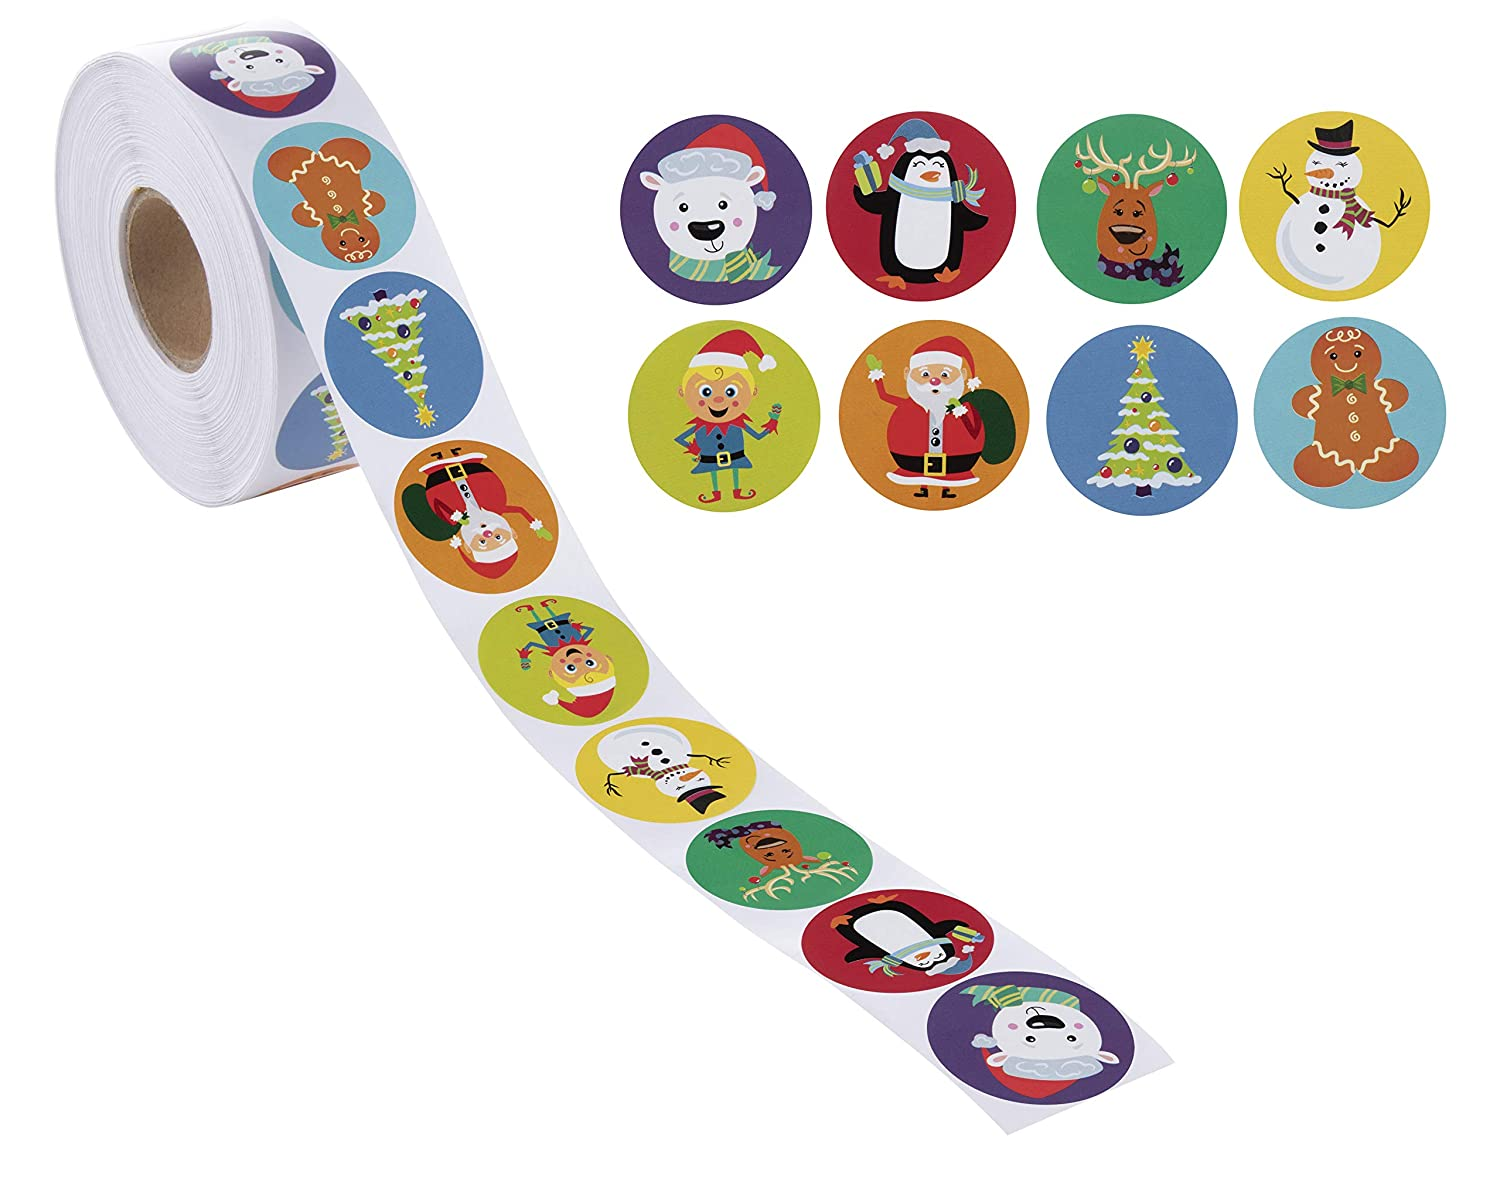 Holiday stickers 1000 count christmas sticker roll for kids reward stickers for students envelope seals scrapbook winter holiday party supplies